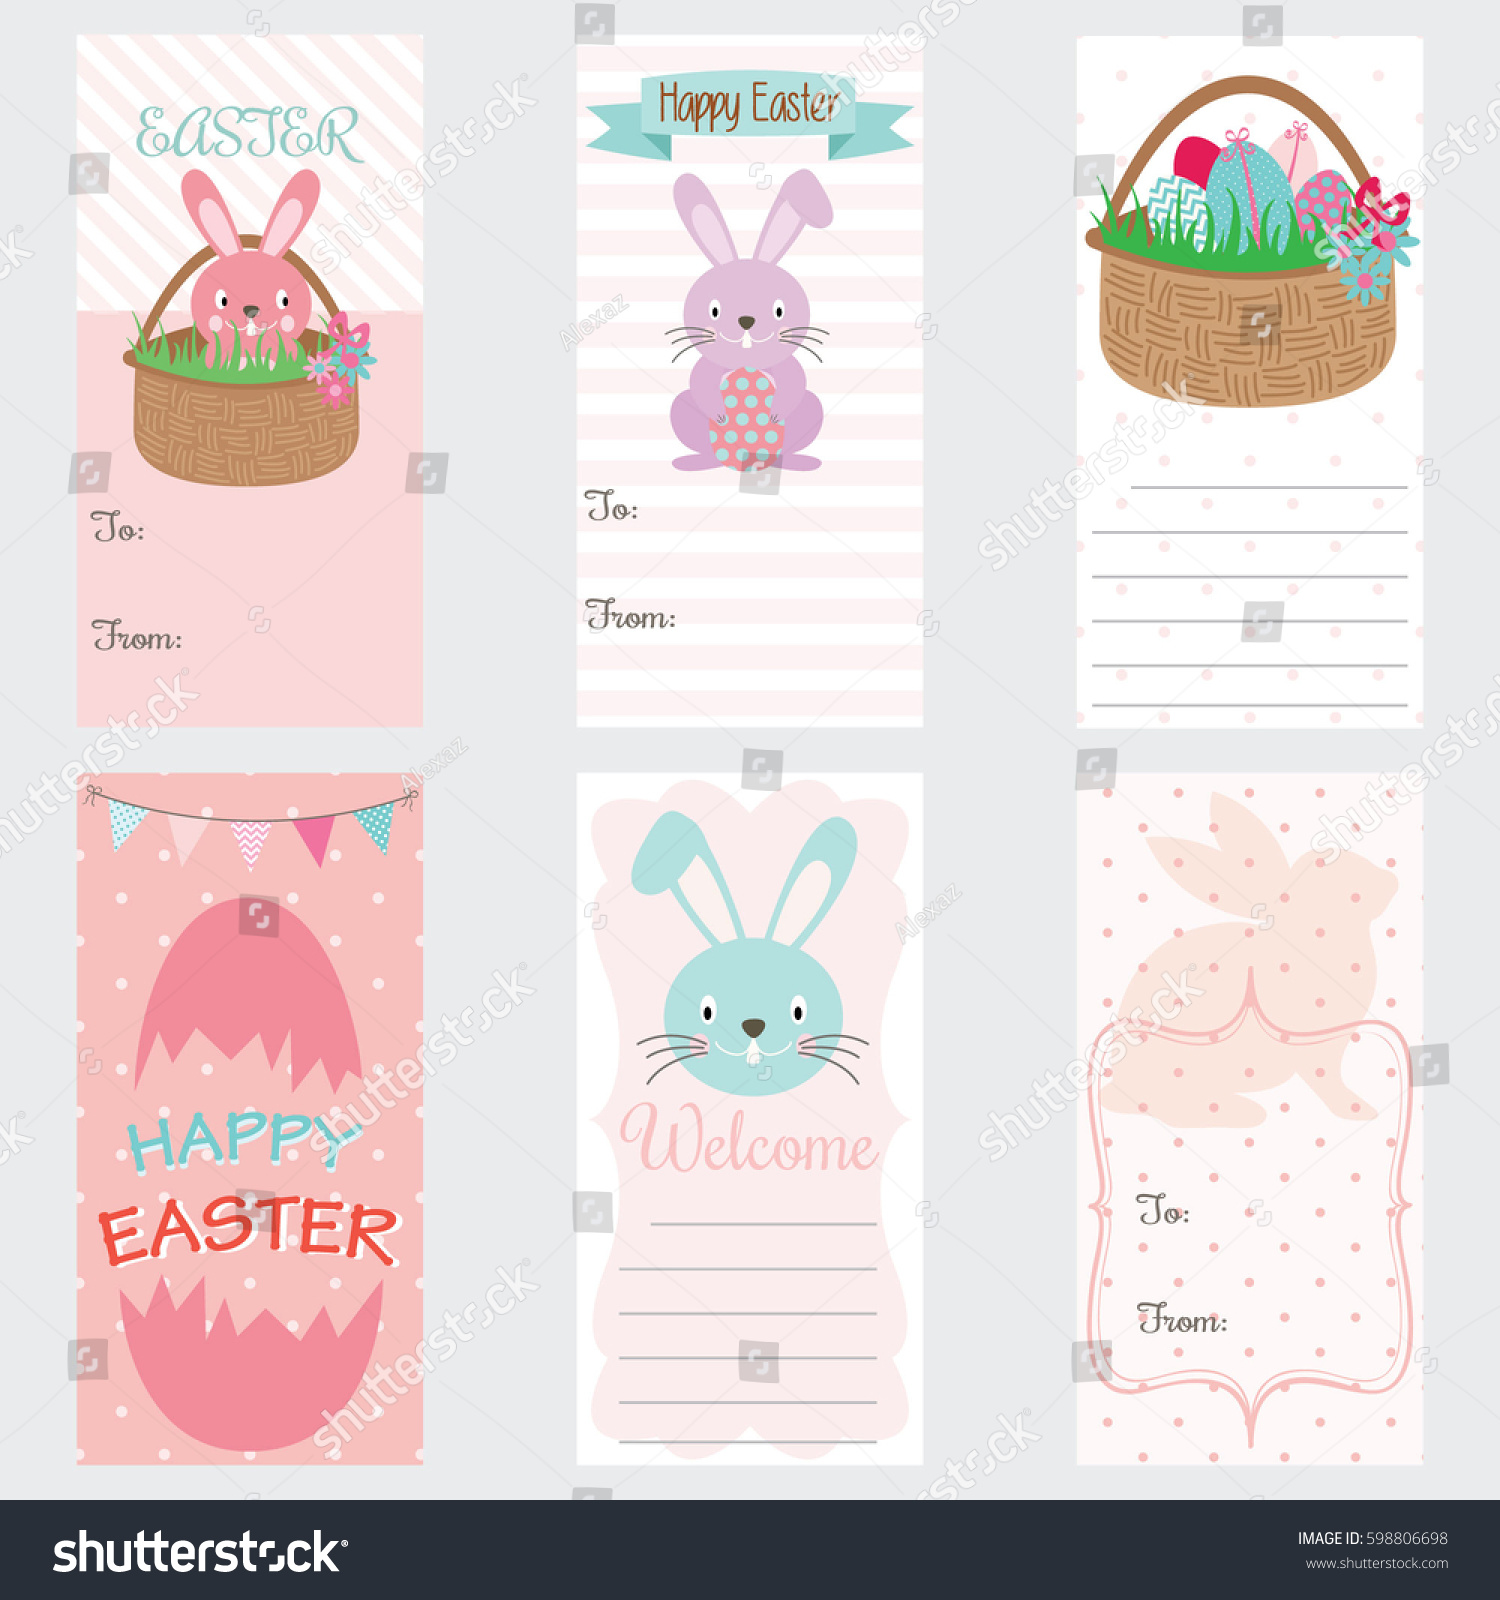 Happy easter invitation cardeaster gift tagseaster stock vector happy easter invitation cardeaster gift tagseaster bunny easter greetings negle Image collections